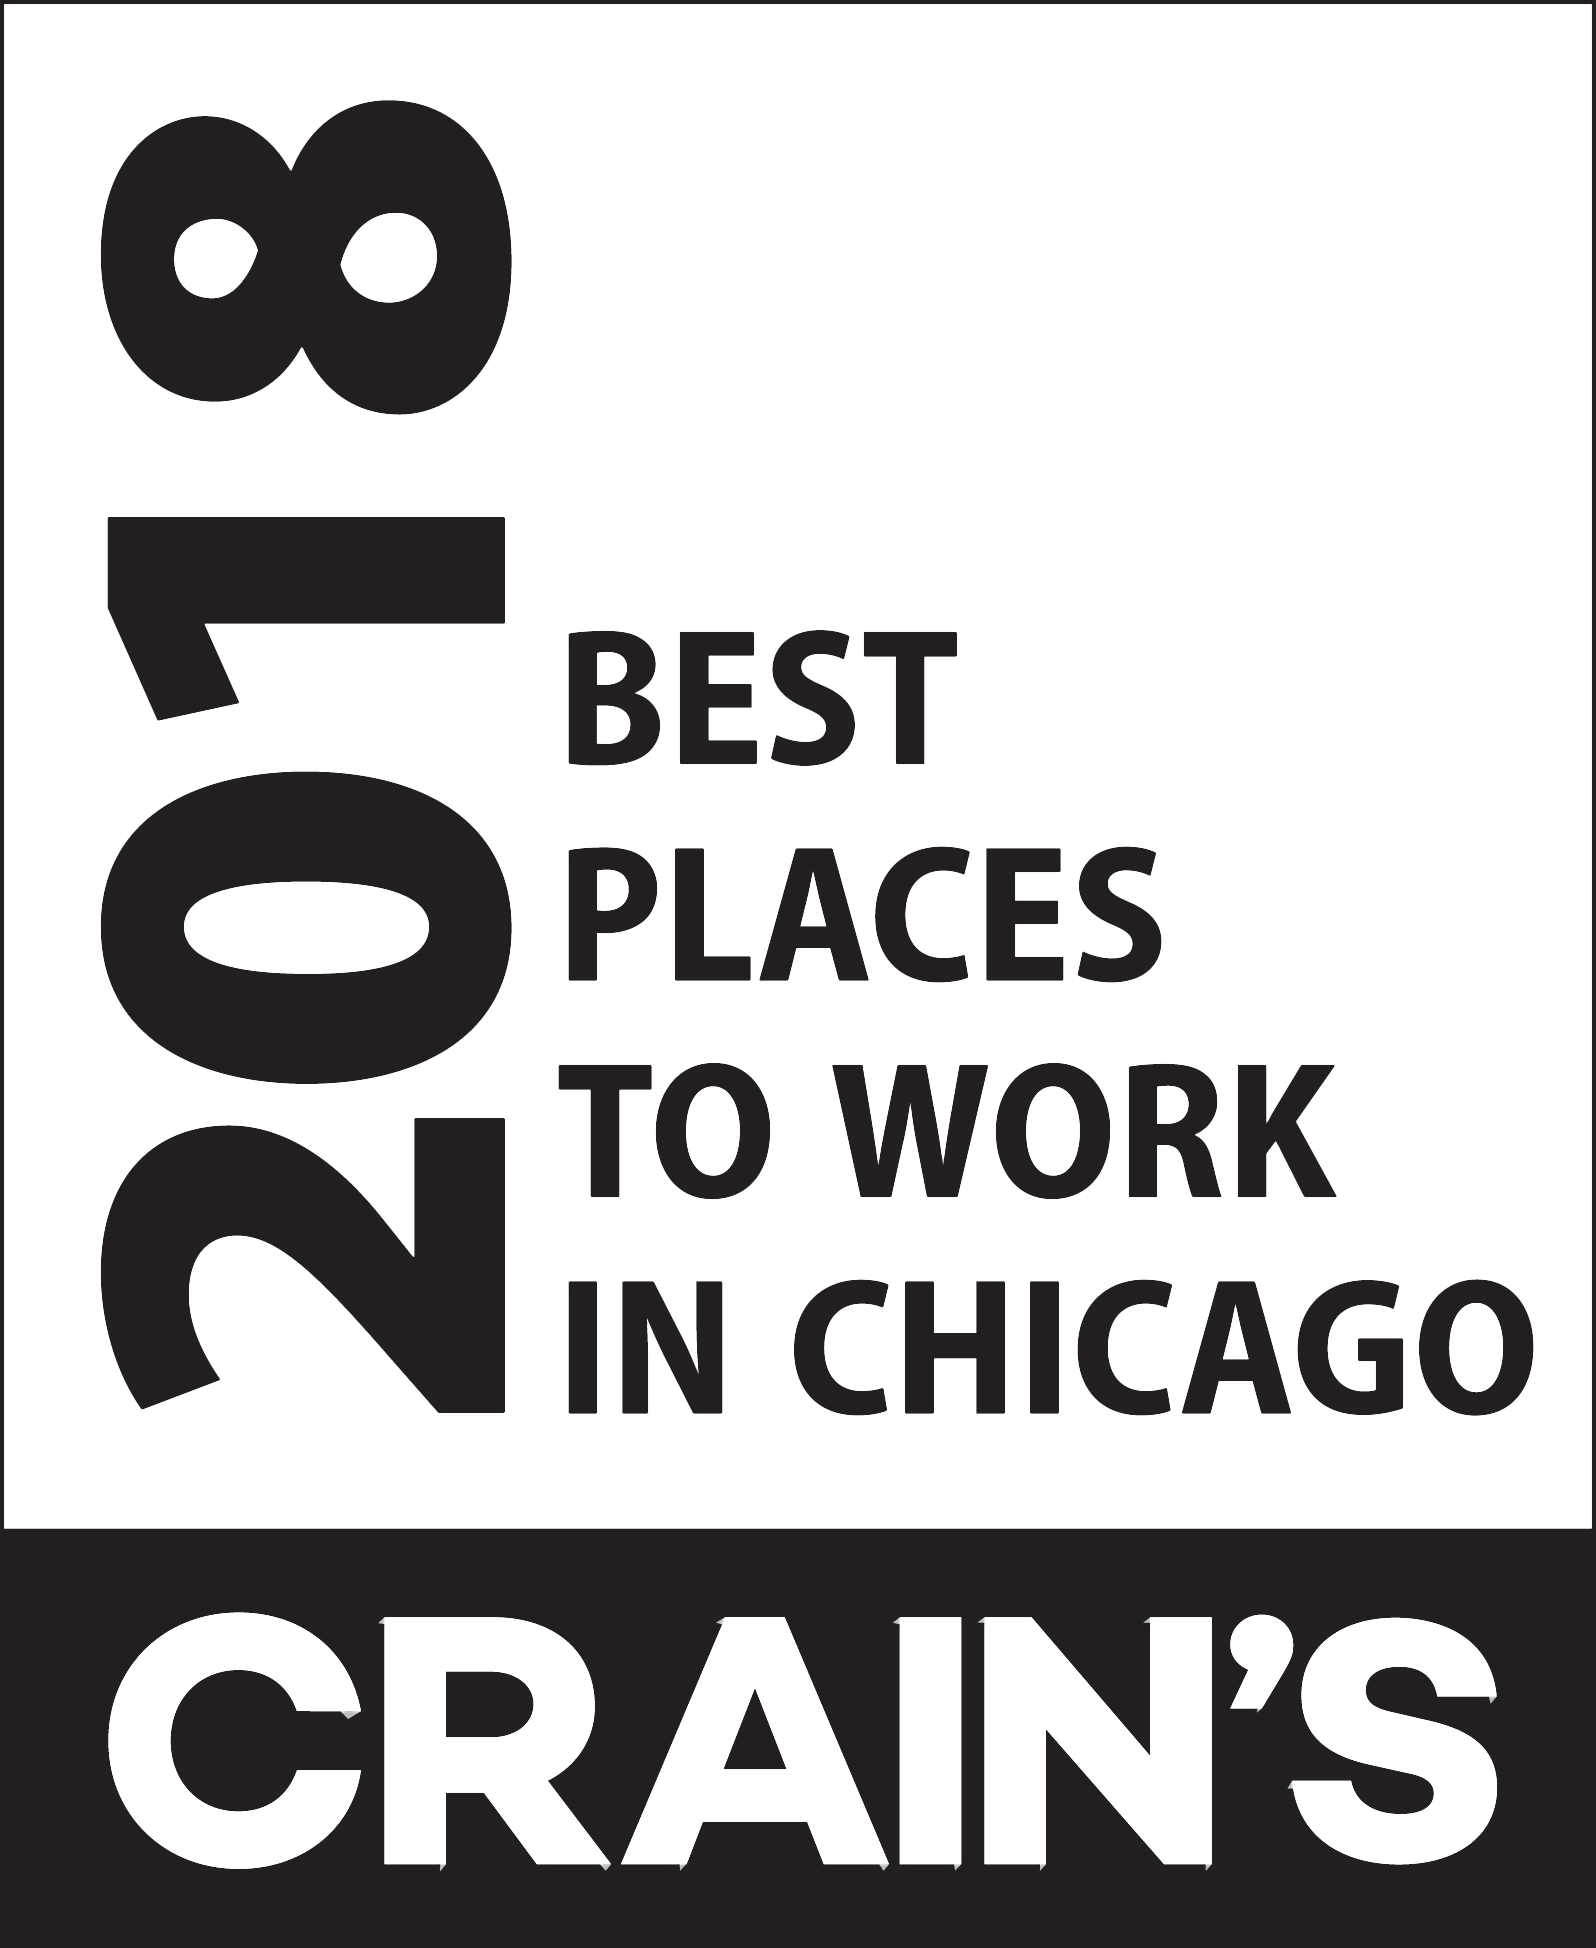 Crain's 2018 Best Places to Work in Chicago logo